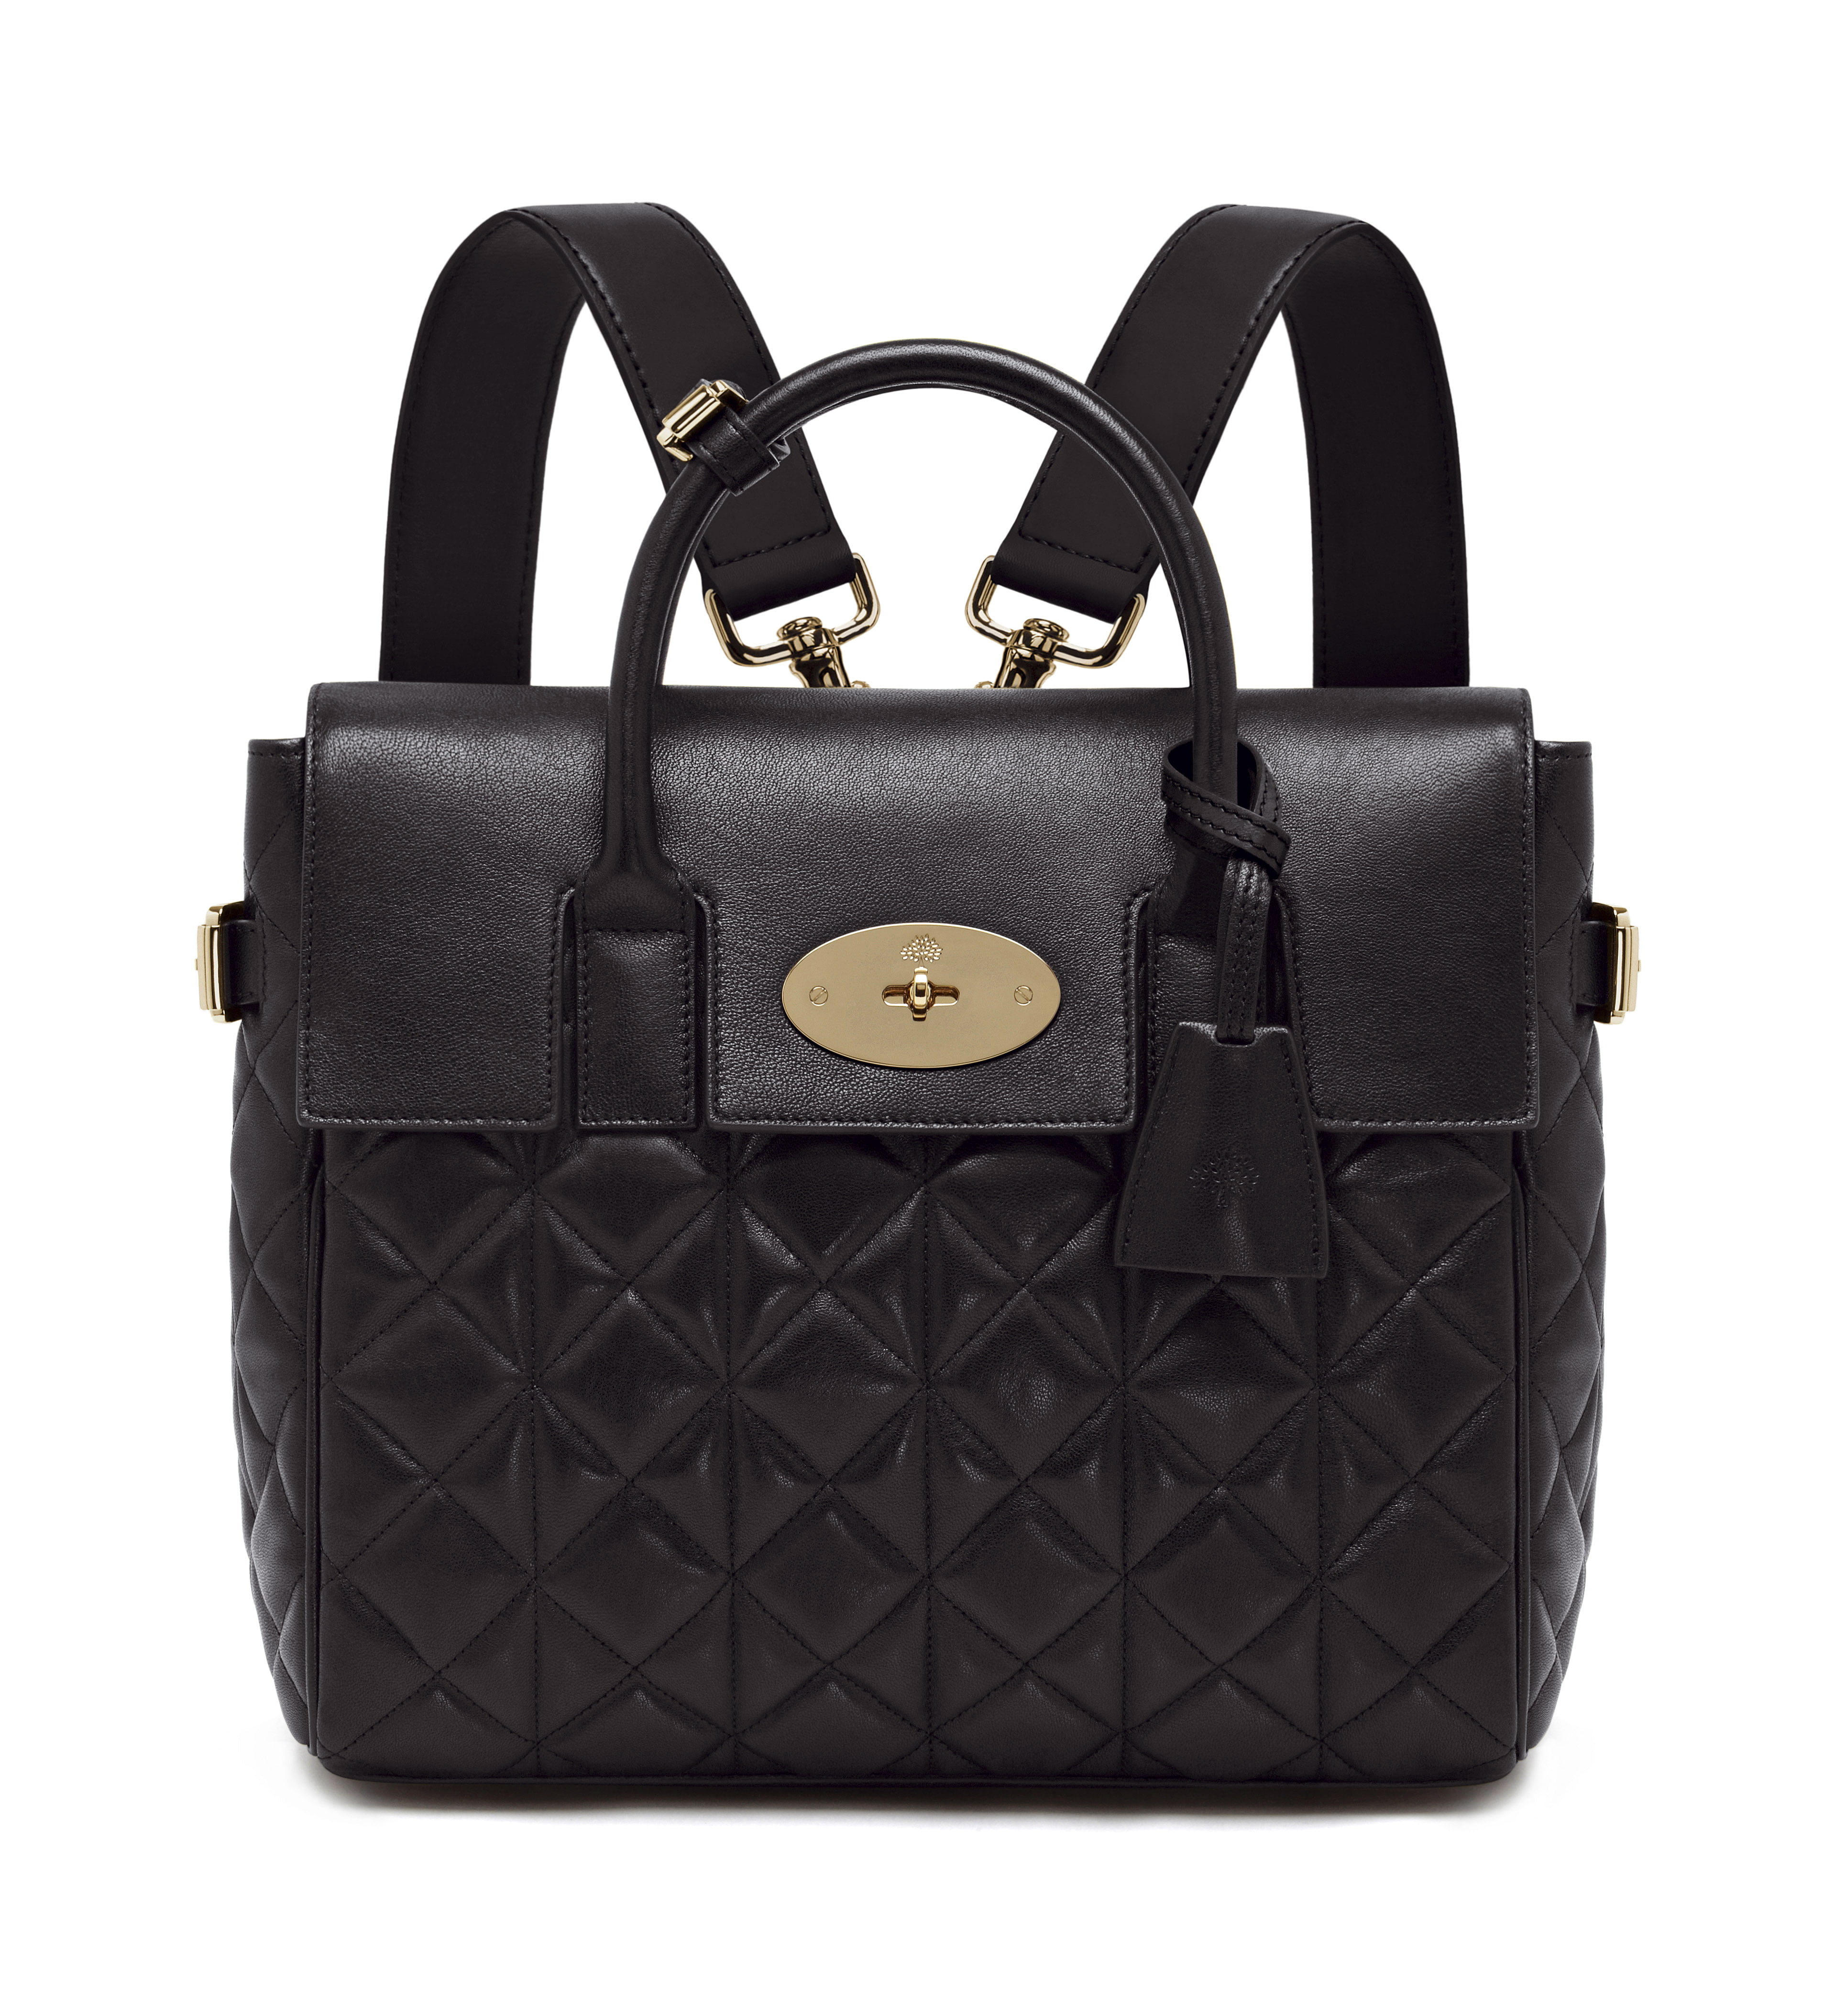 Cara Delevingne Bag in Black Quilted Nappa